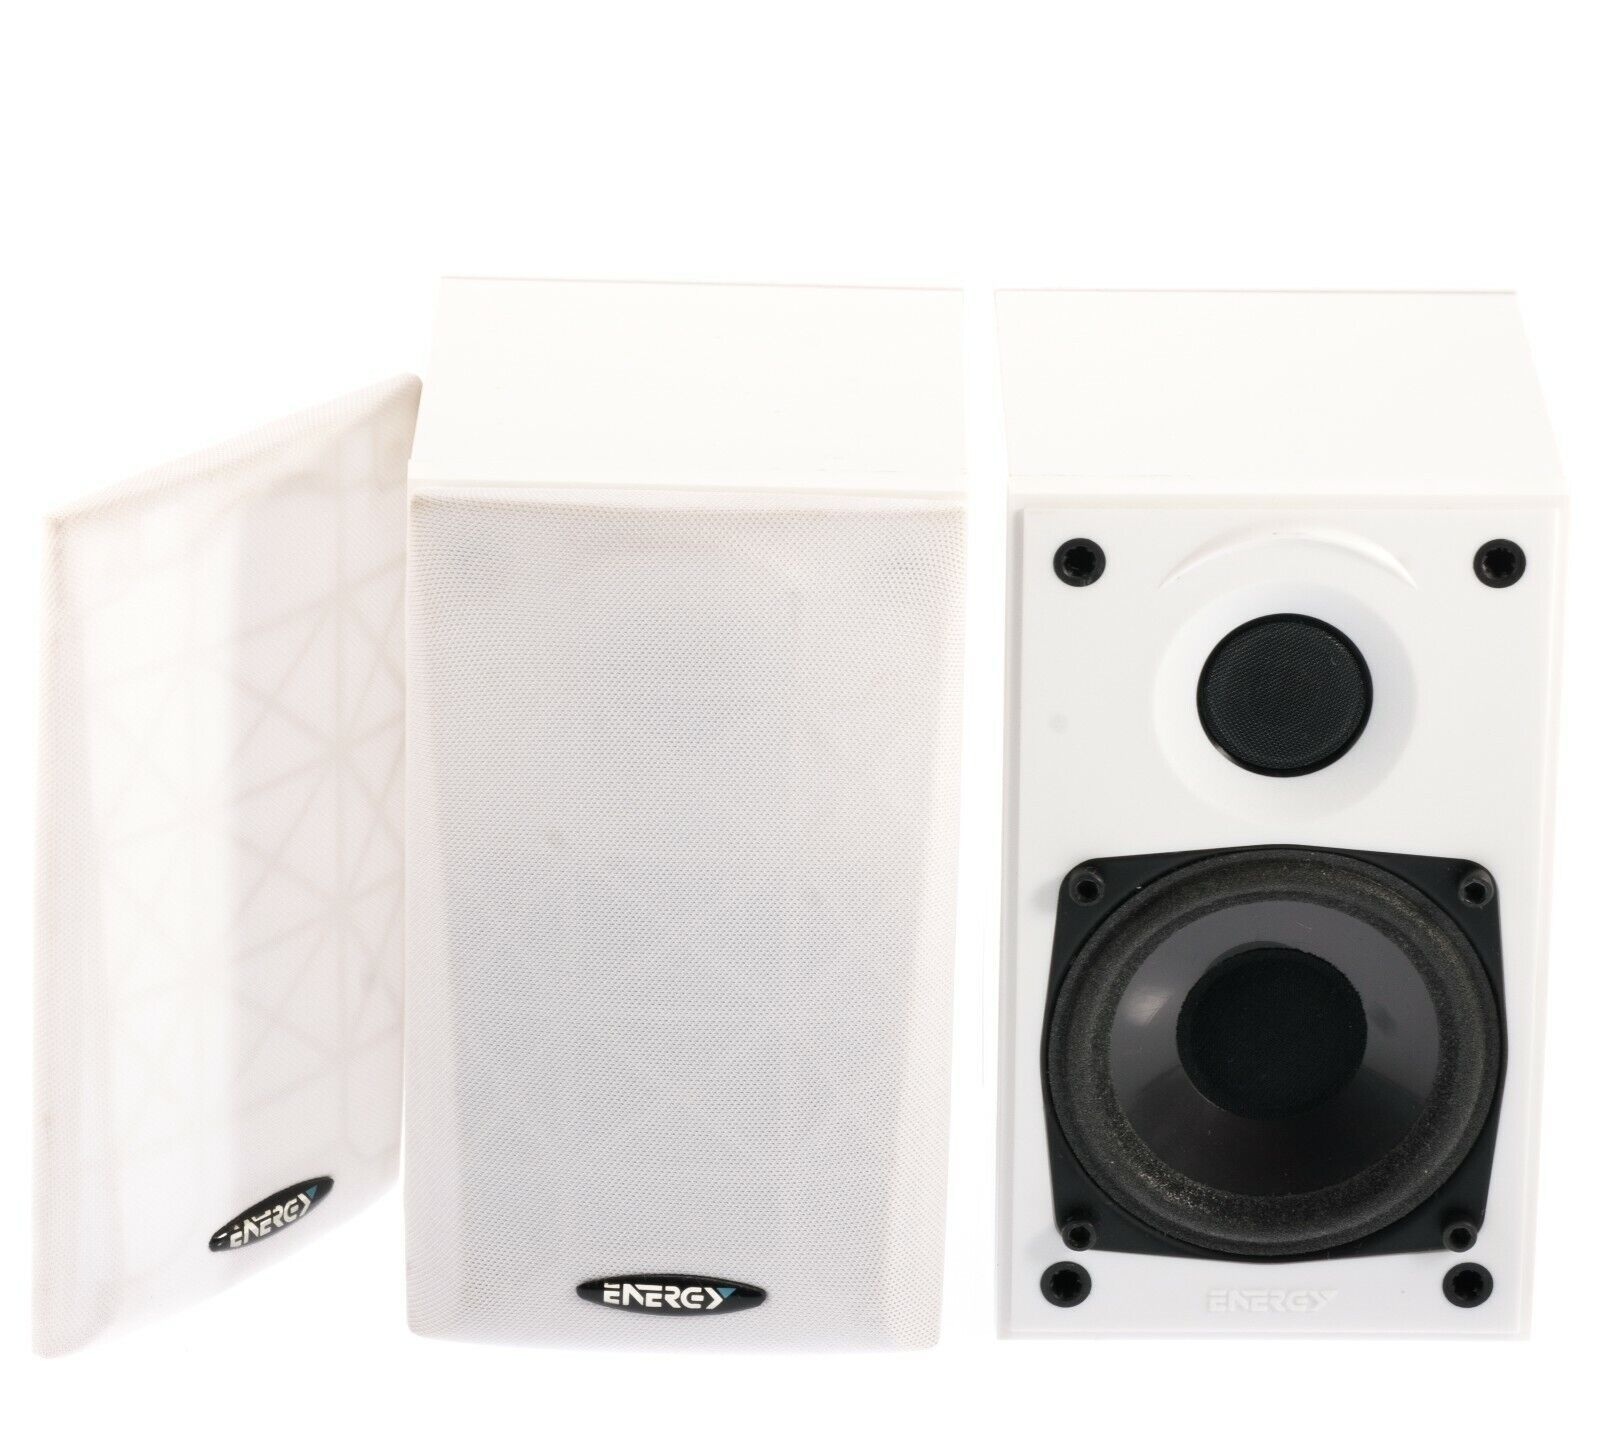 Energy Take 2 Satellite Speakers 1 Pair White Made In Canada VG Tested Klipsch - $59.00